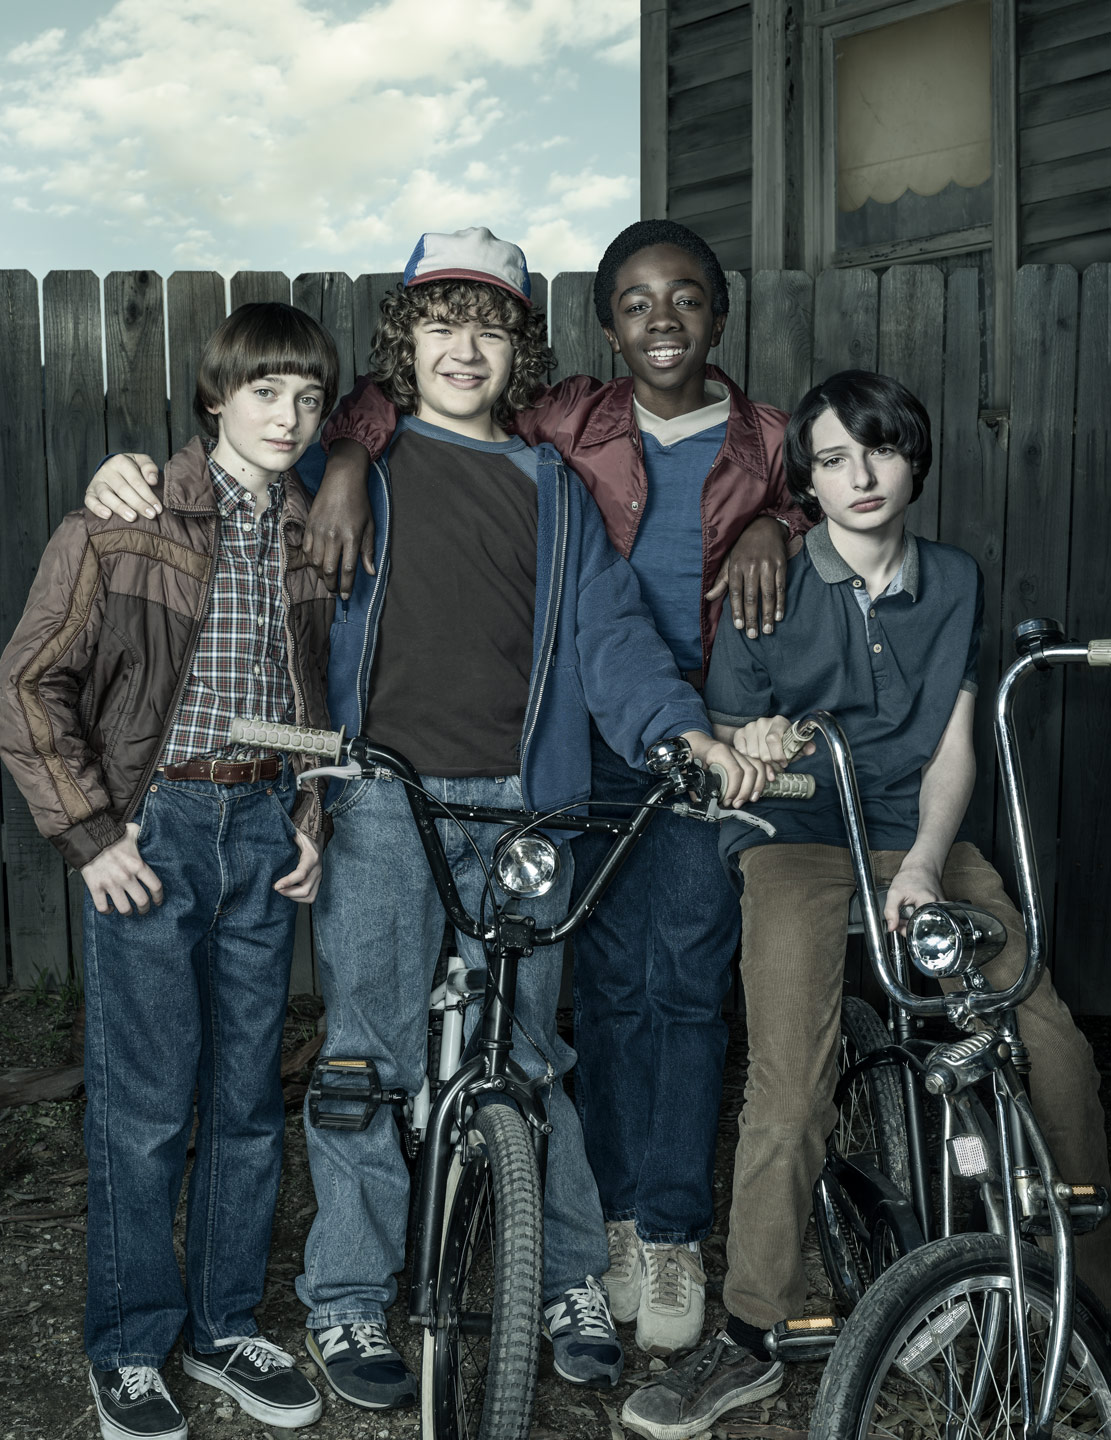 Winters_EW_Stranger_Things_Kids_Group_0535_v4